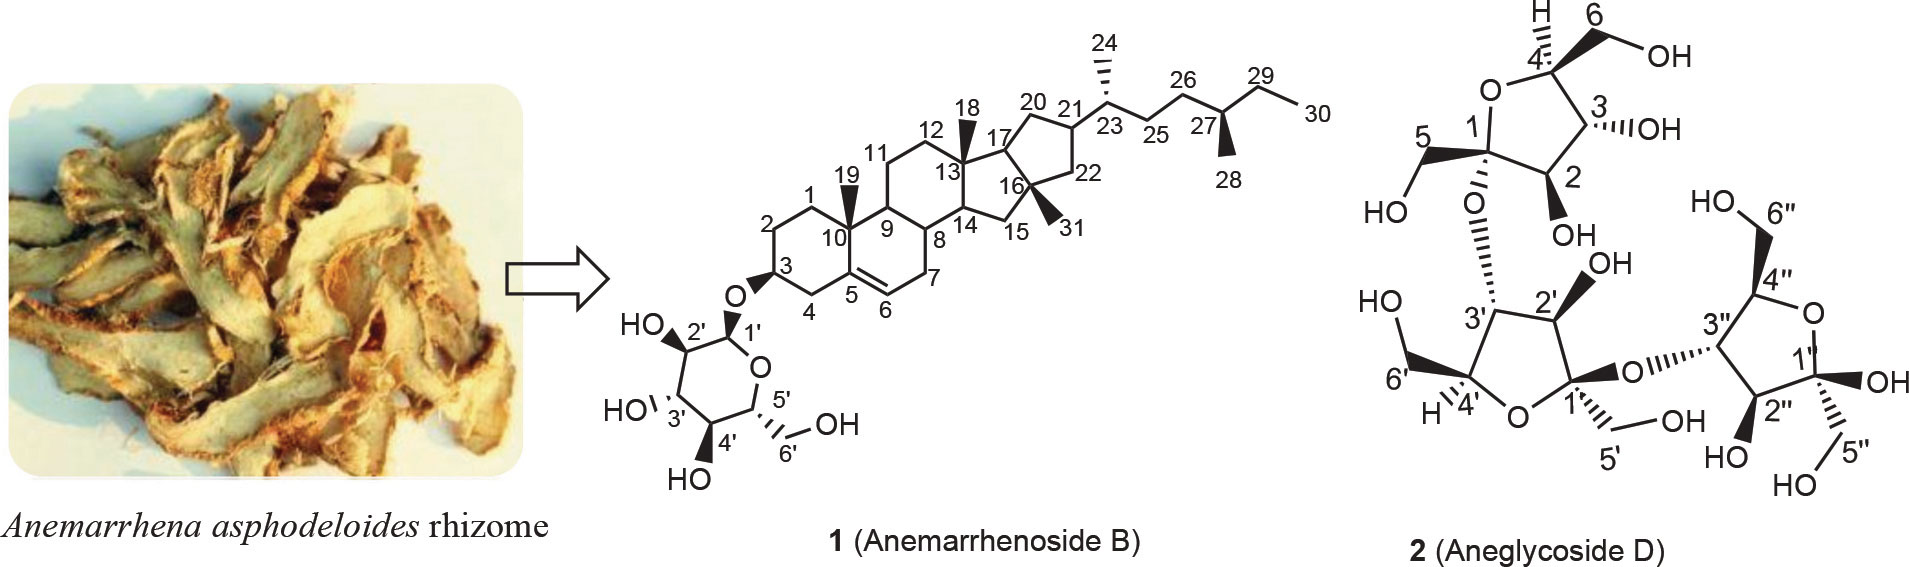 Isolation of New Glycosides from Anemarrhena Asphodeloides Rhizome and Screening of their Anticancer Activity